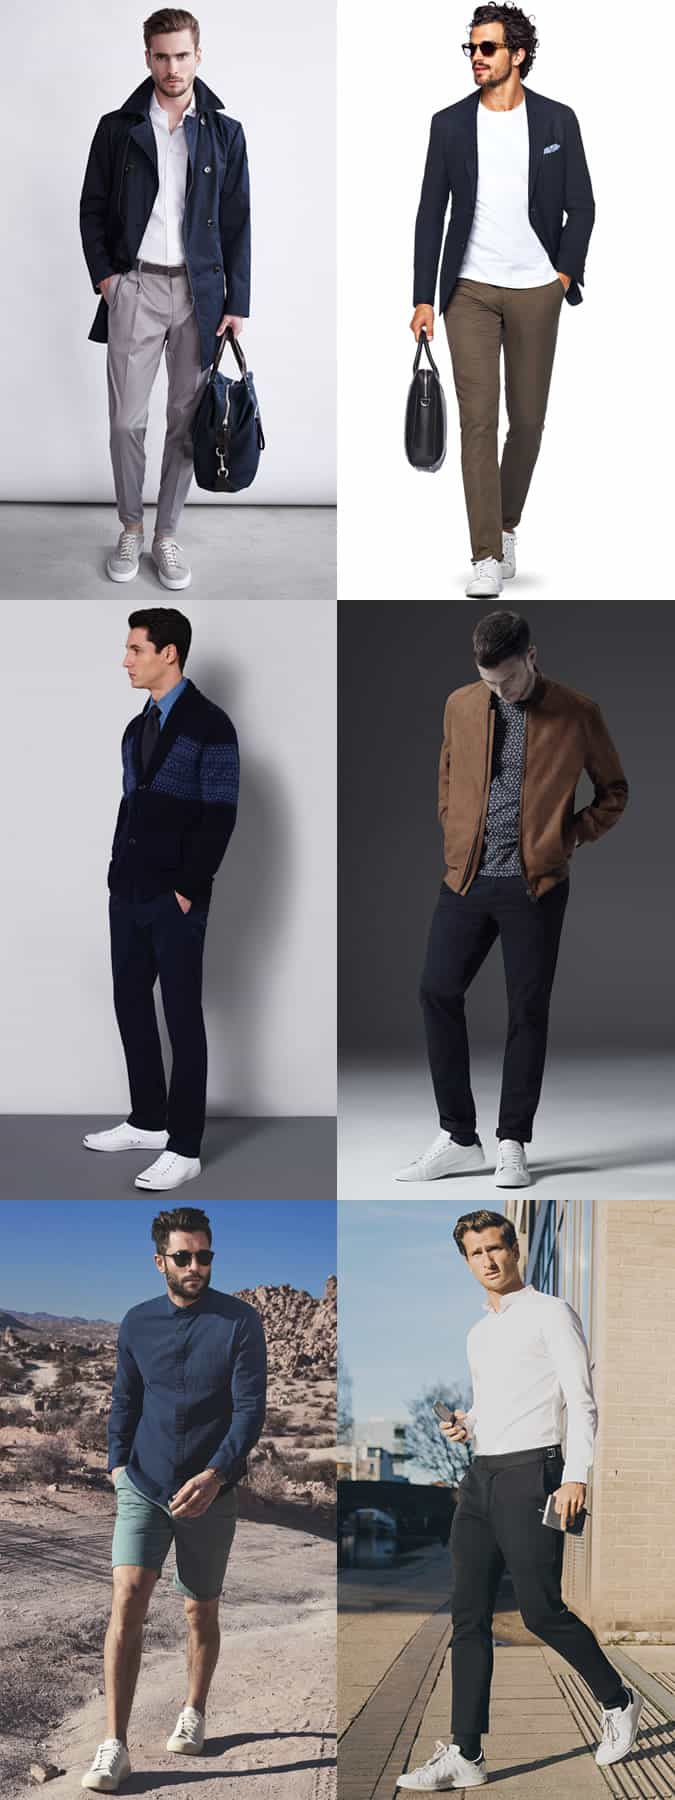 Men's Plain Neutral Trainers/Sneakers Fashion/Style Outfit Inspiration Lookbook